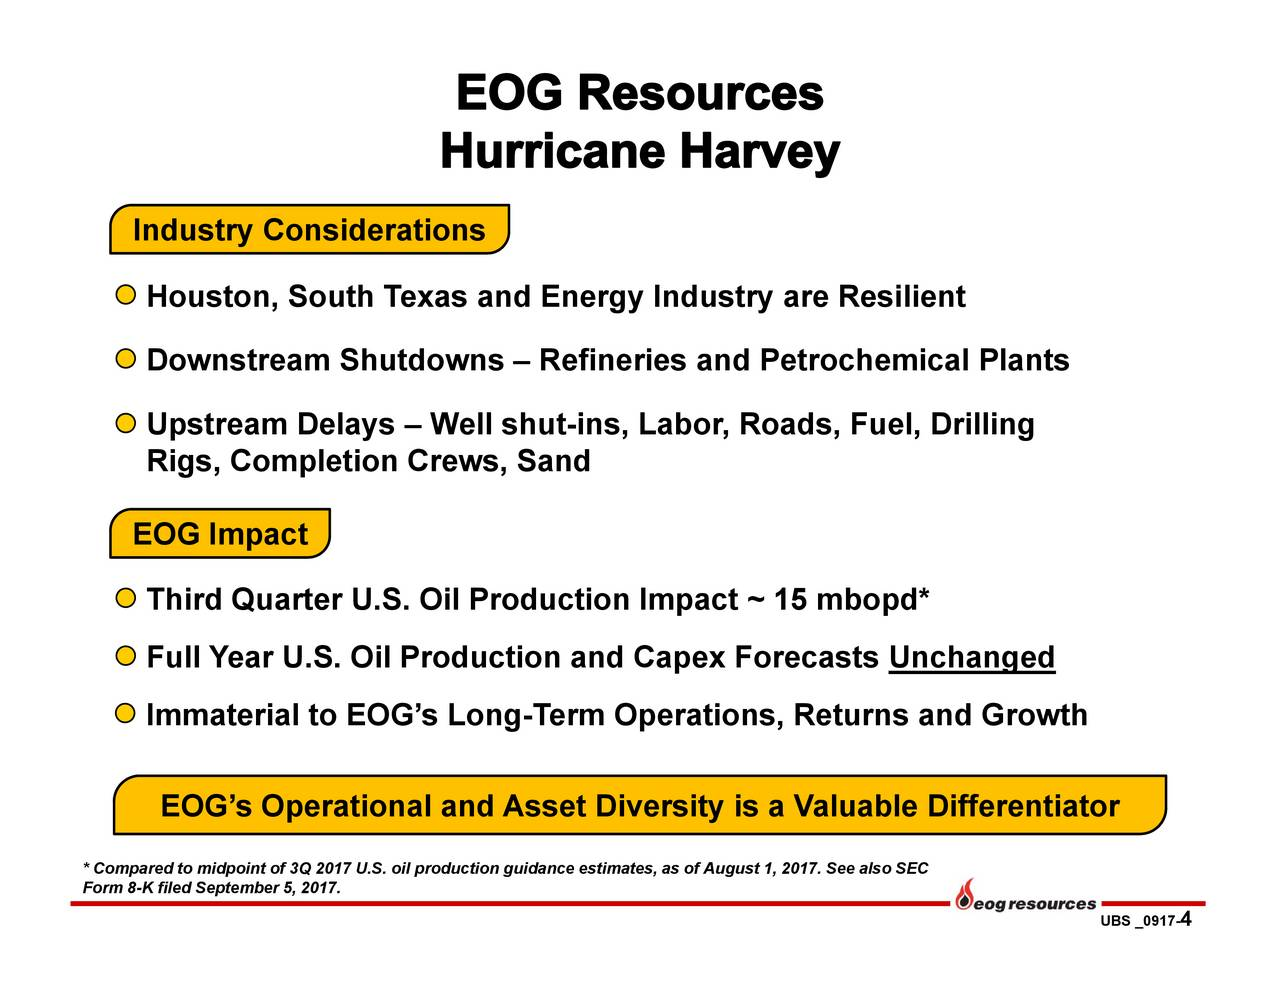 The Energy Bus Quotes Eog Resources Eog Presents At Ubs Investment Houston Energy Bus